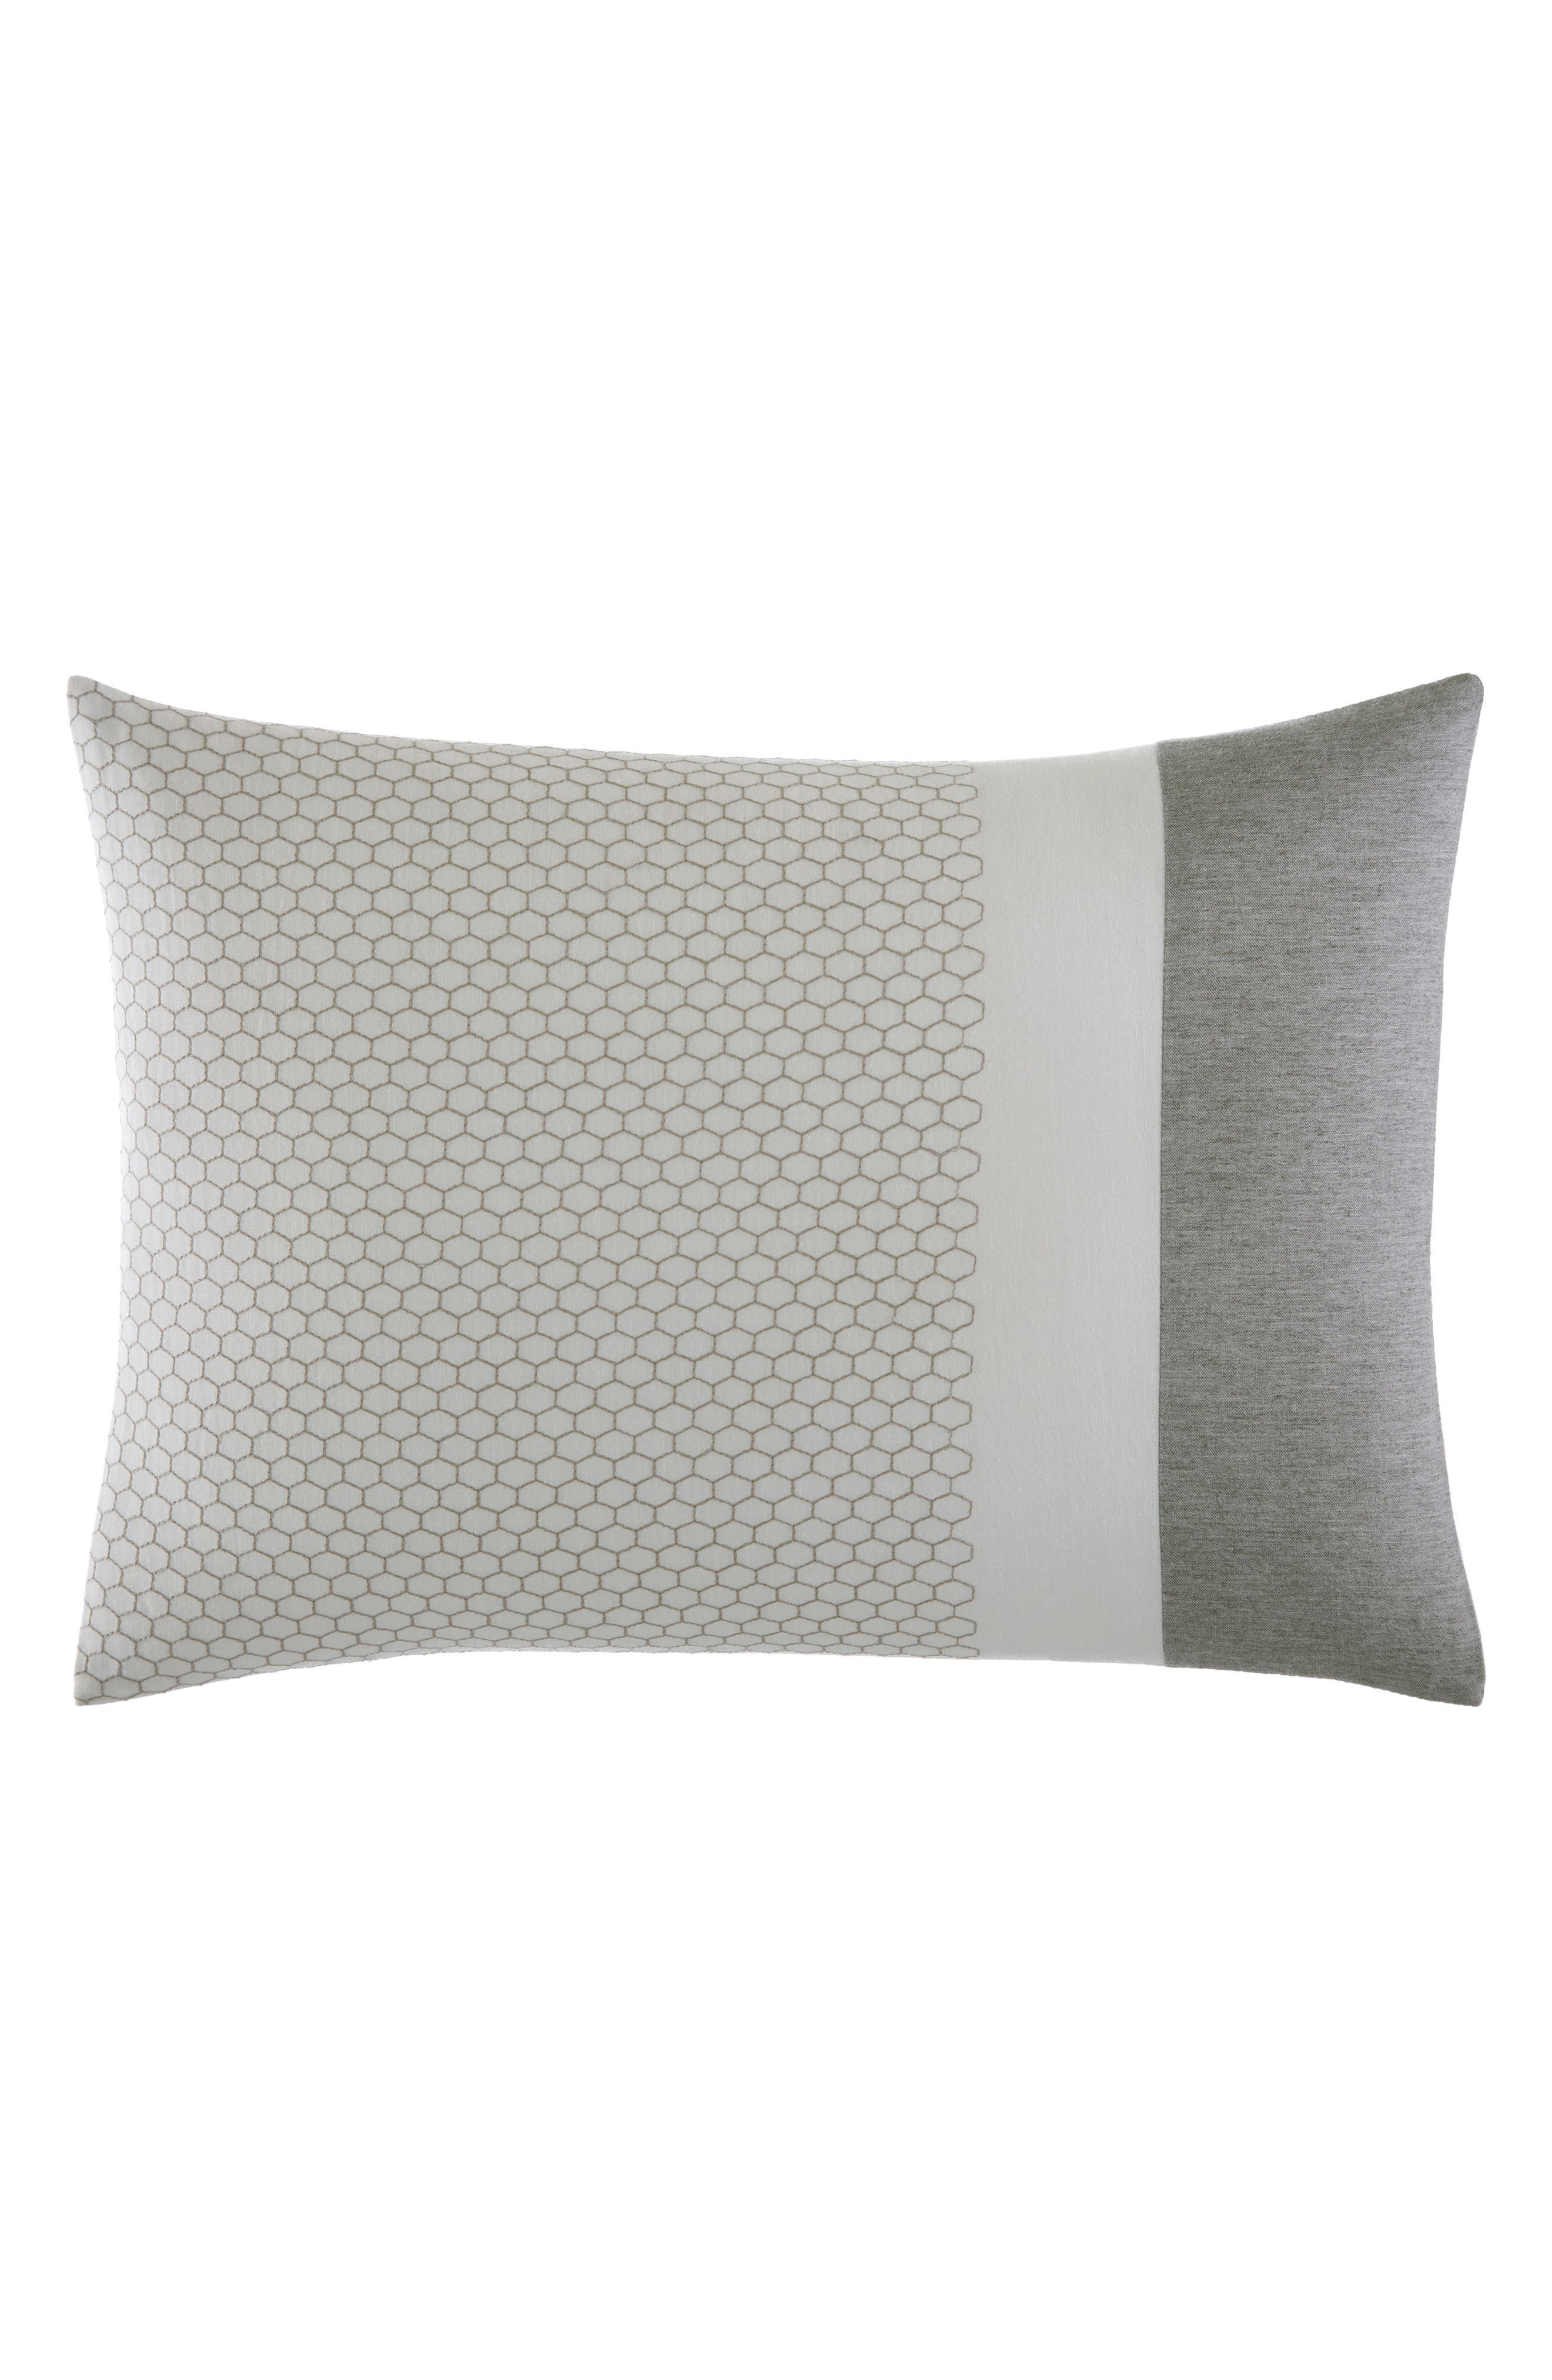 Vera Wang Tuille Floral Breakfast Pillow